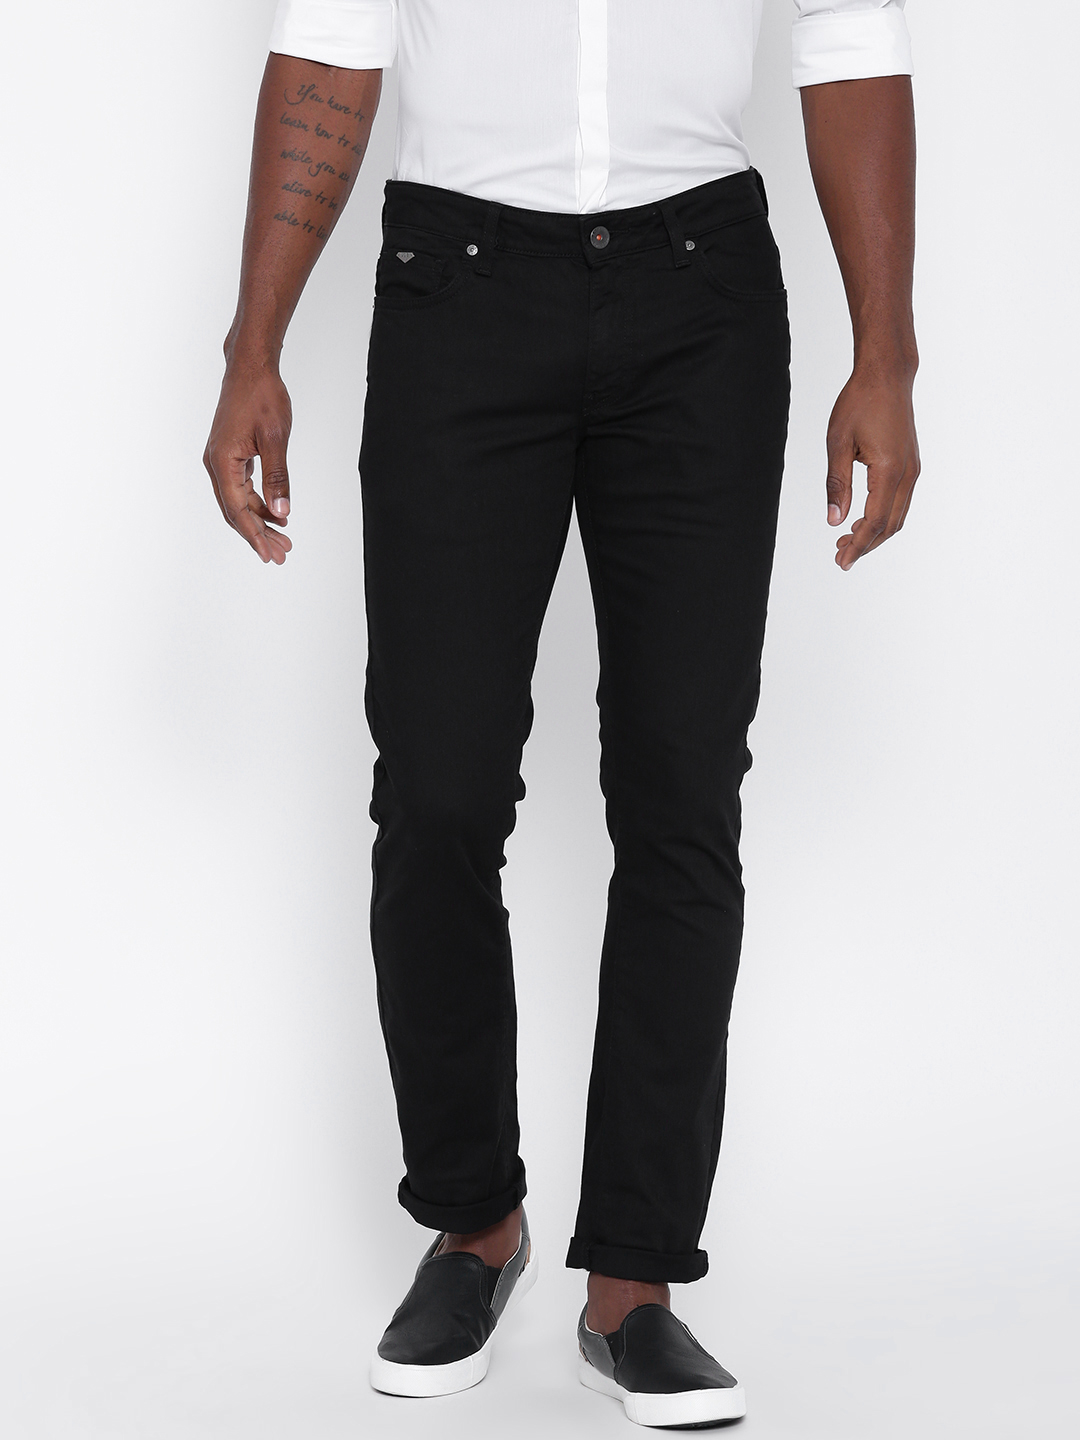 UCB plain black casual wear denim jeans - G3-MJE1515 | G3fashion.com